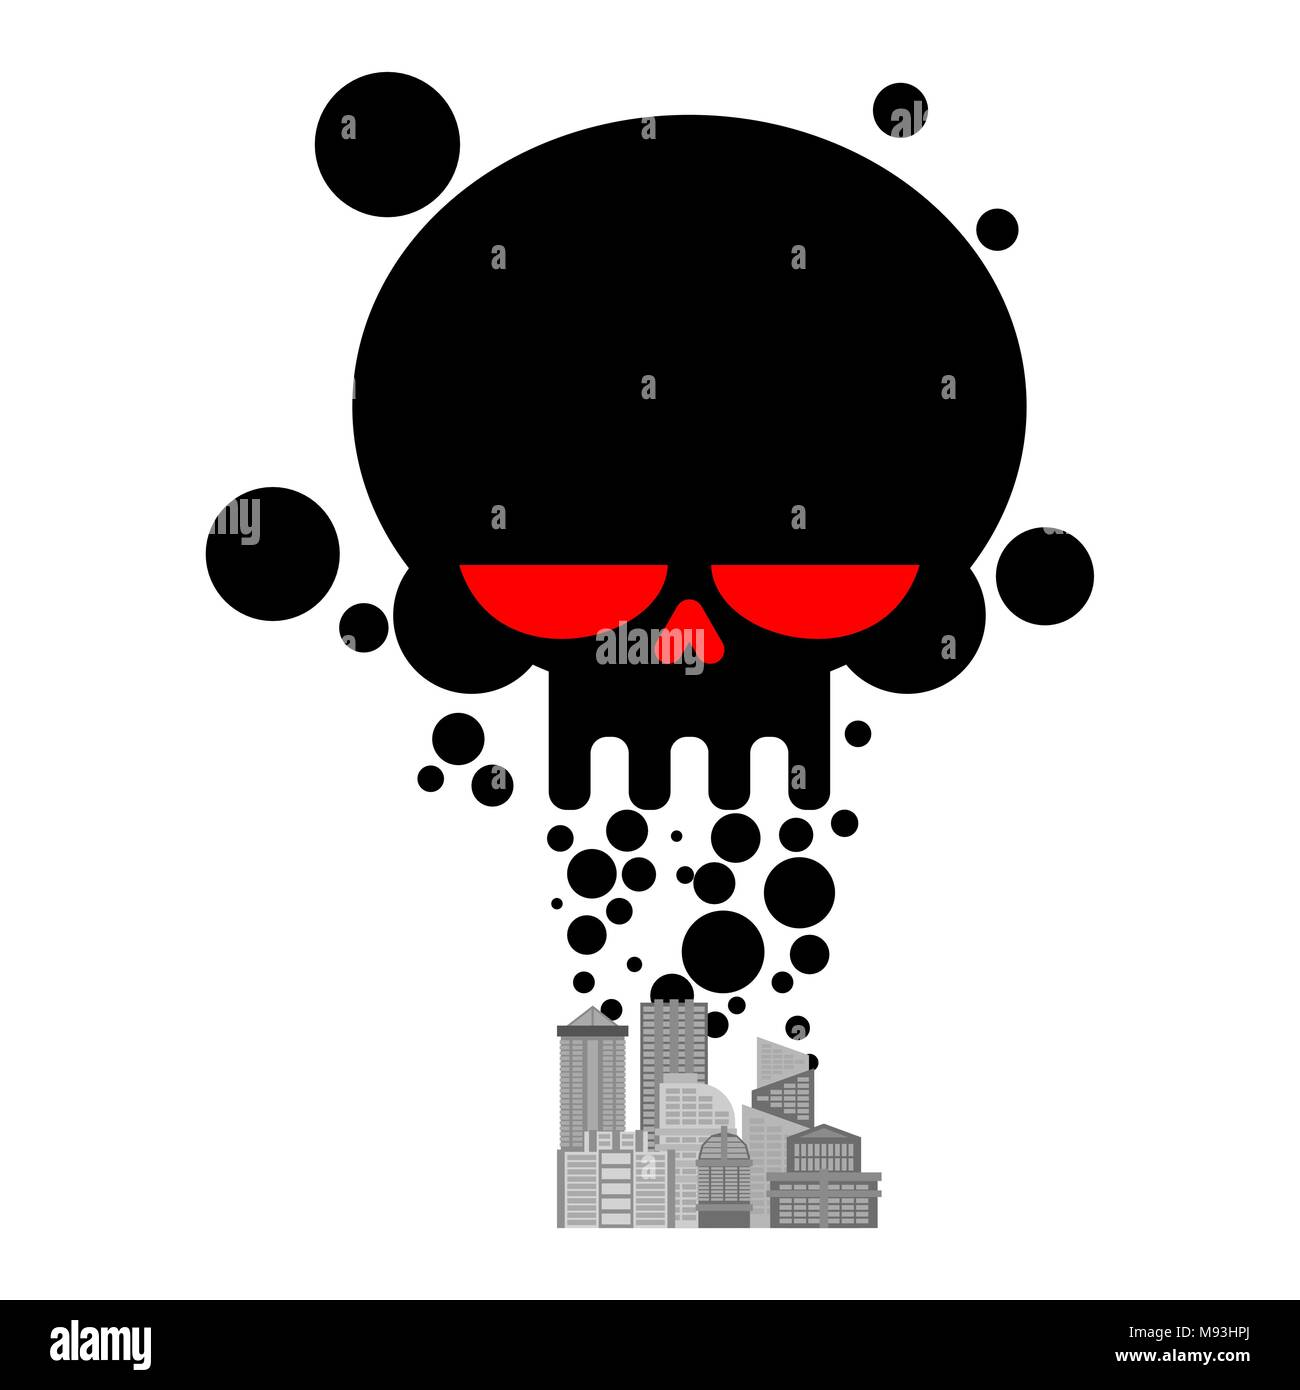 Exhaust gases from city. Black Smoke skull. Environmental pollution. Factory and poisonous gas.  death of all living things. Ecological catastrophy - Stock Image